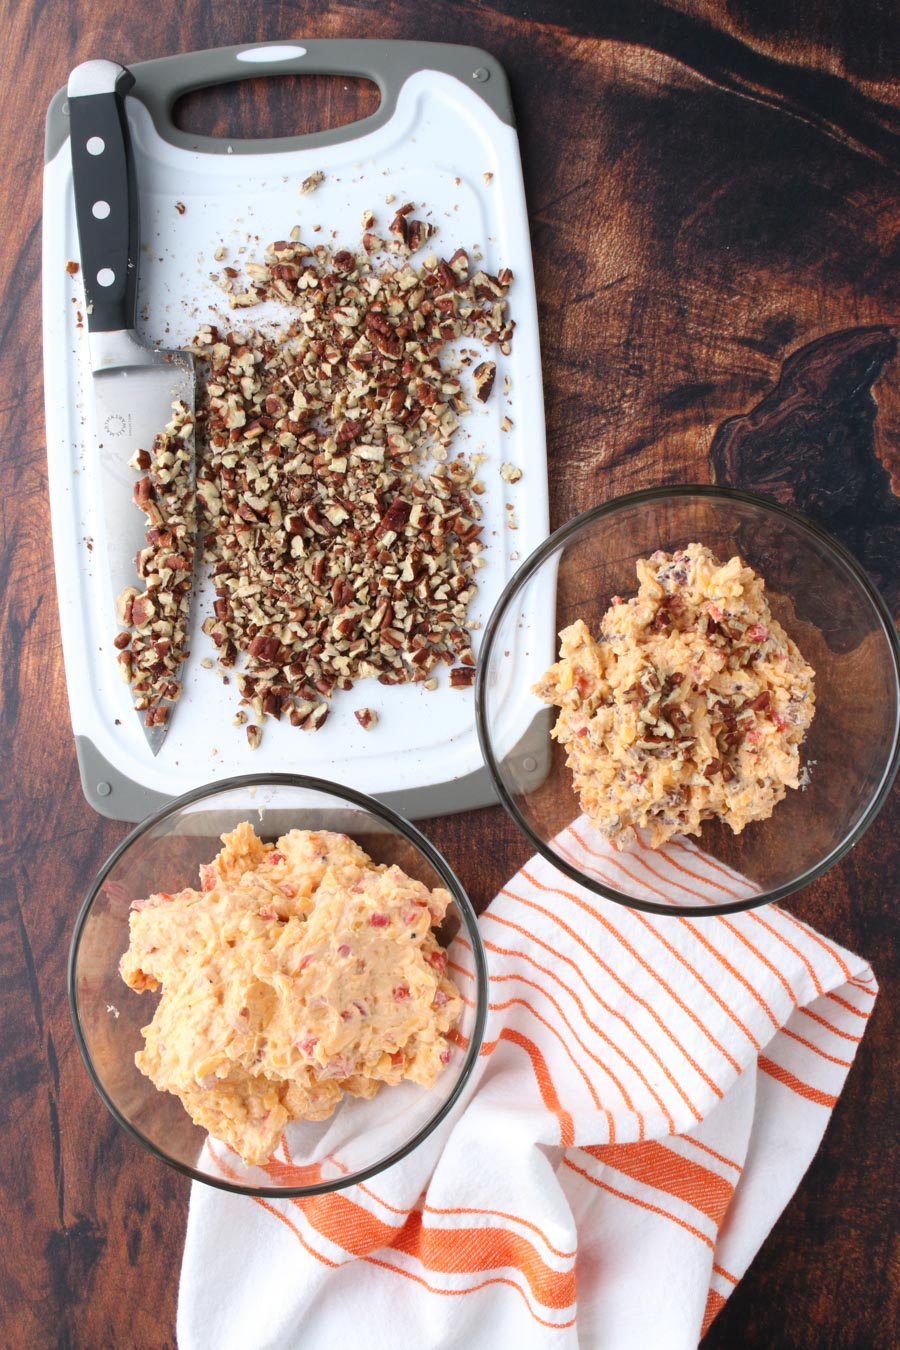 Pimento cheese in a bowl with a cookie sheet of chopped pecans